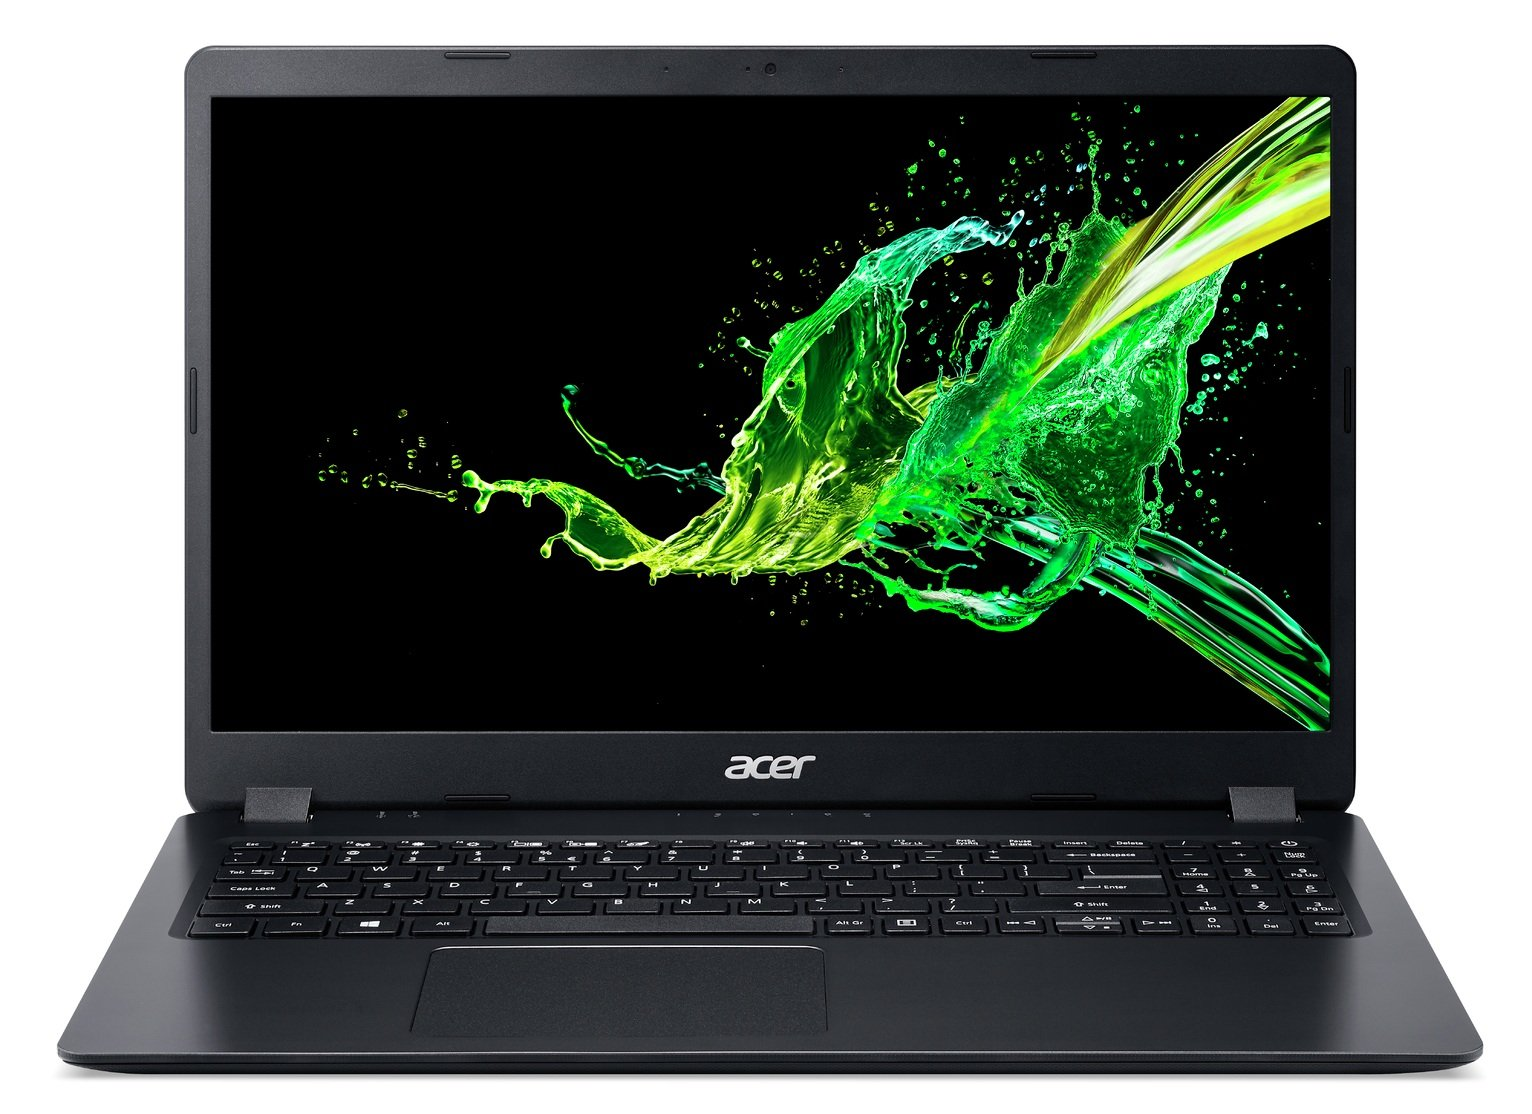 Acer Aspire 3 15.6 Inch Ryzen 5 8GB 1TB FHD Laptop - Black